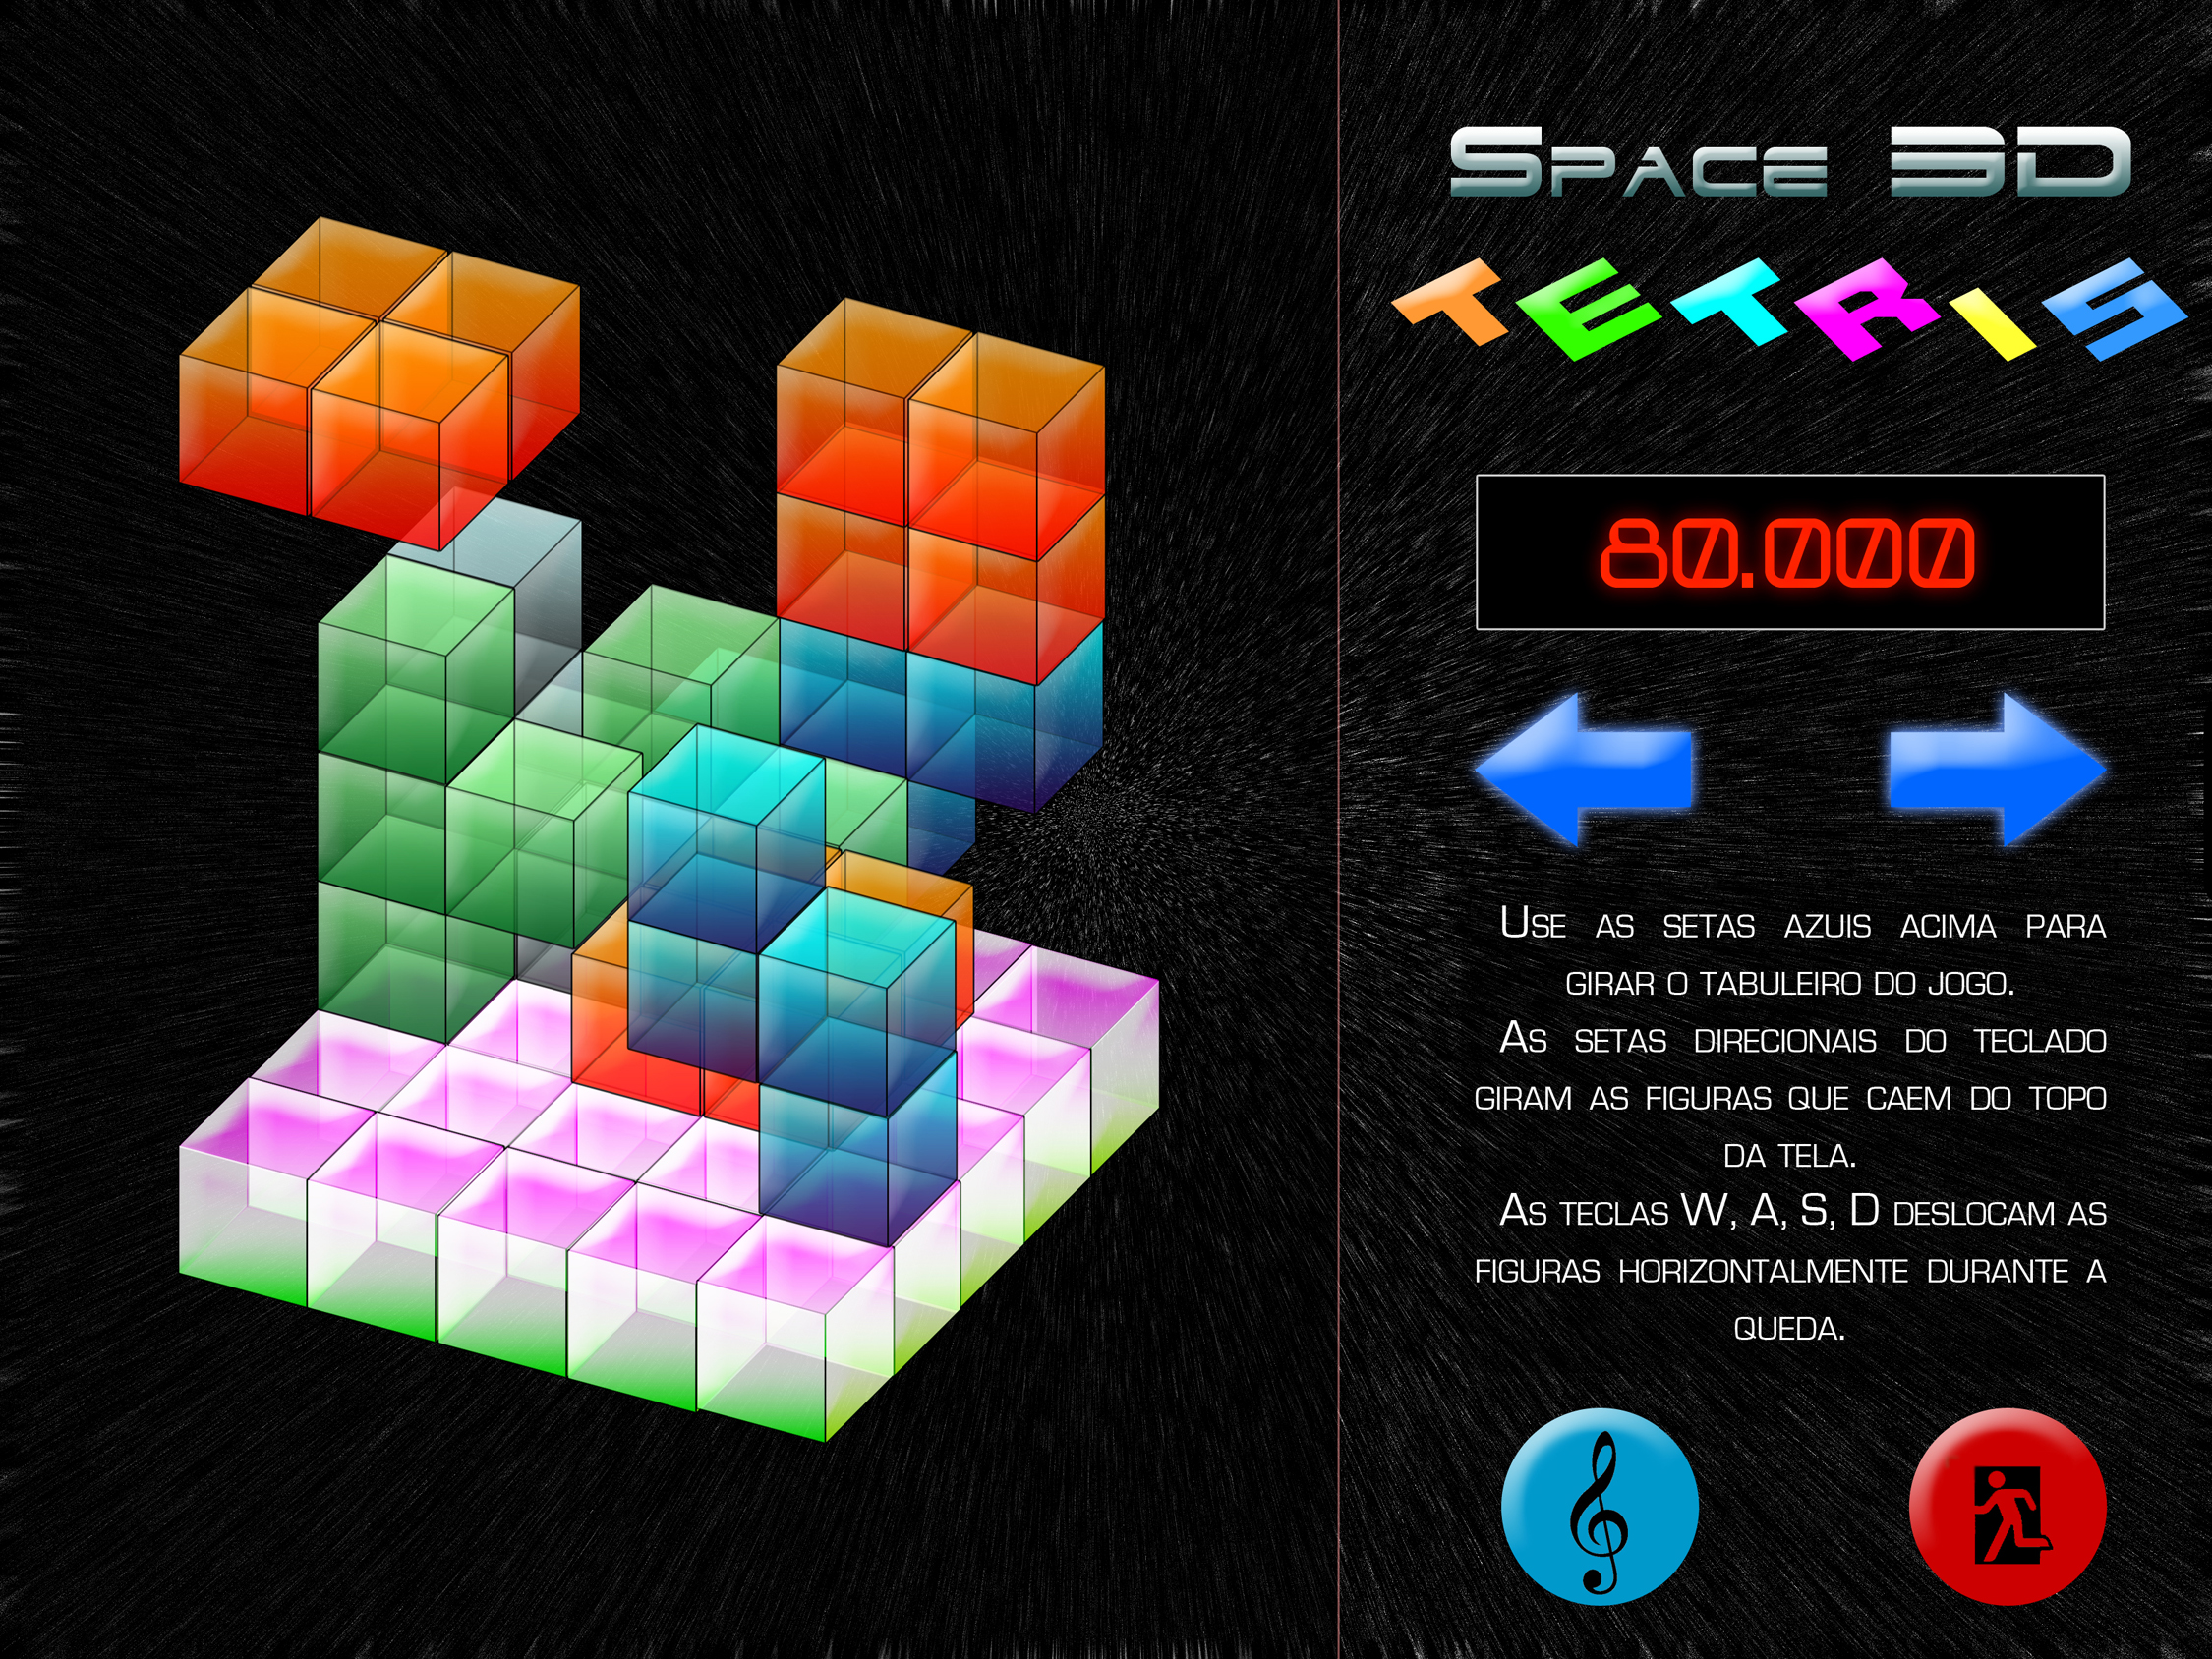 Space 3D Tetris Concept Art